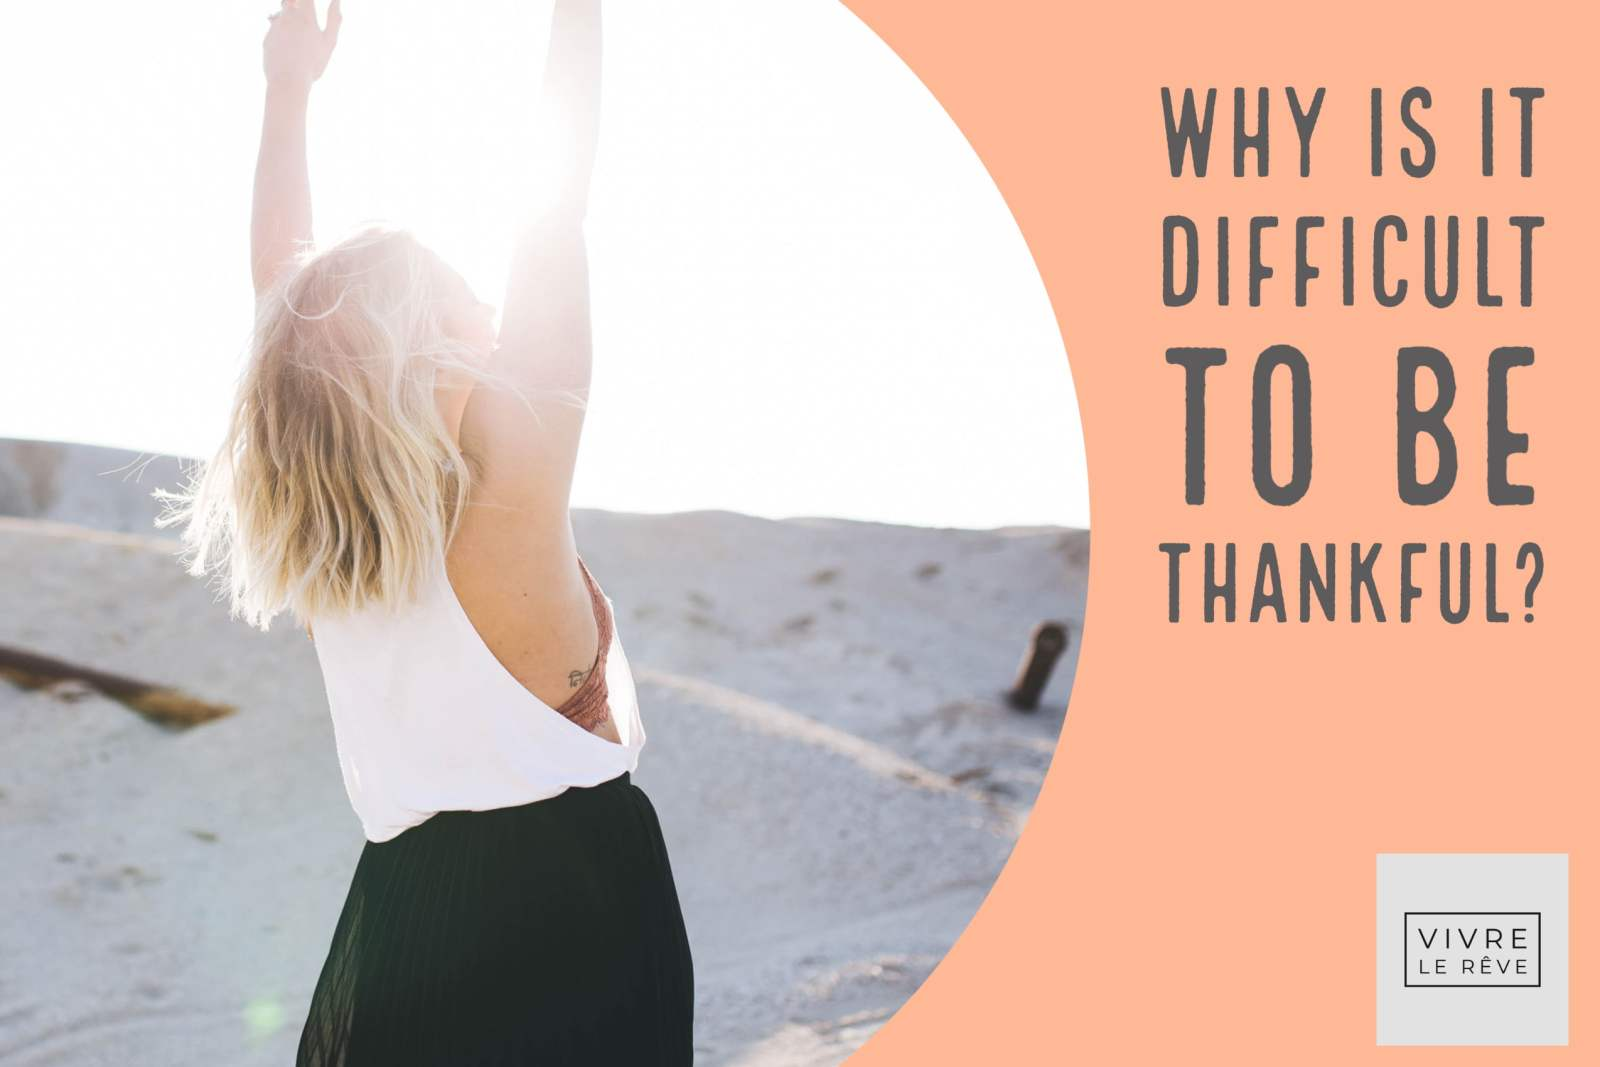 Why Is It Difficult To Be Thankful?